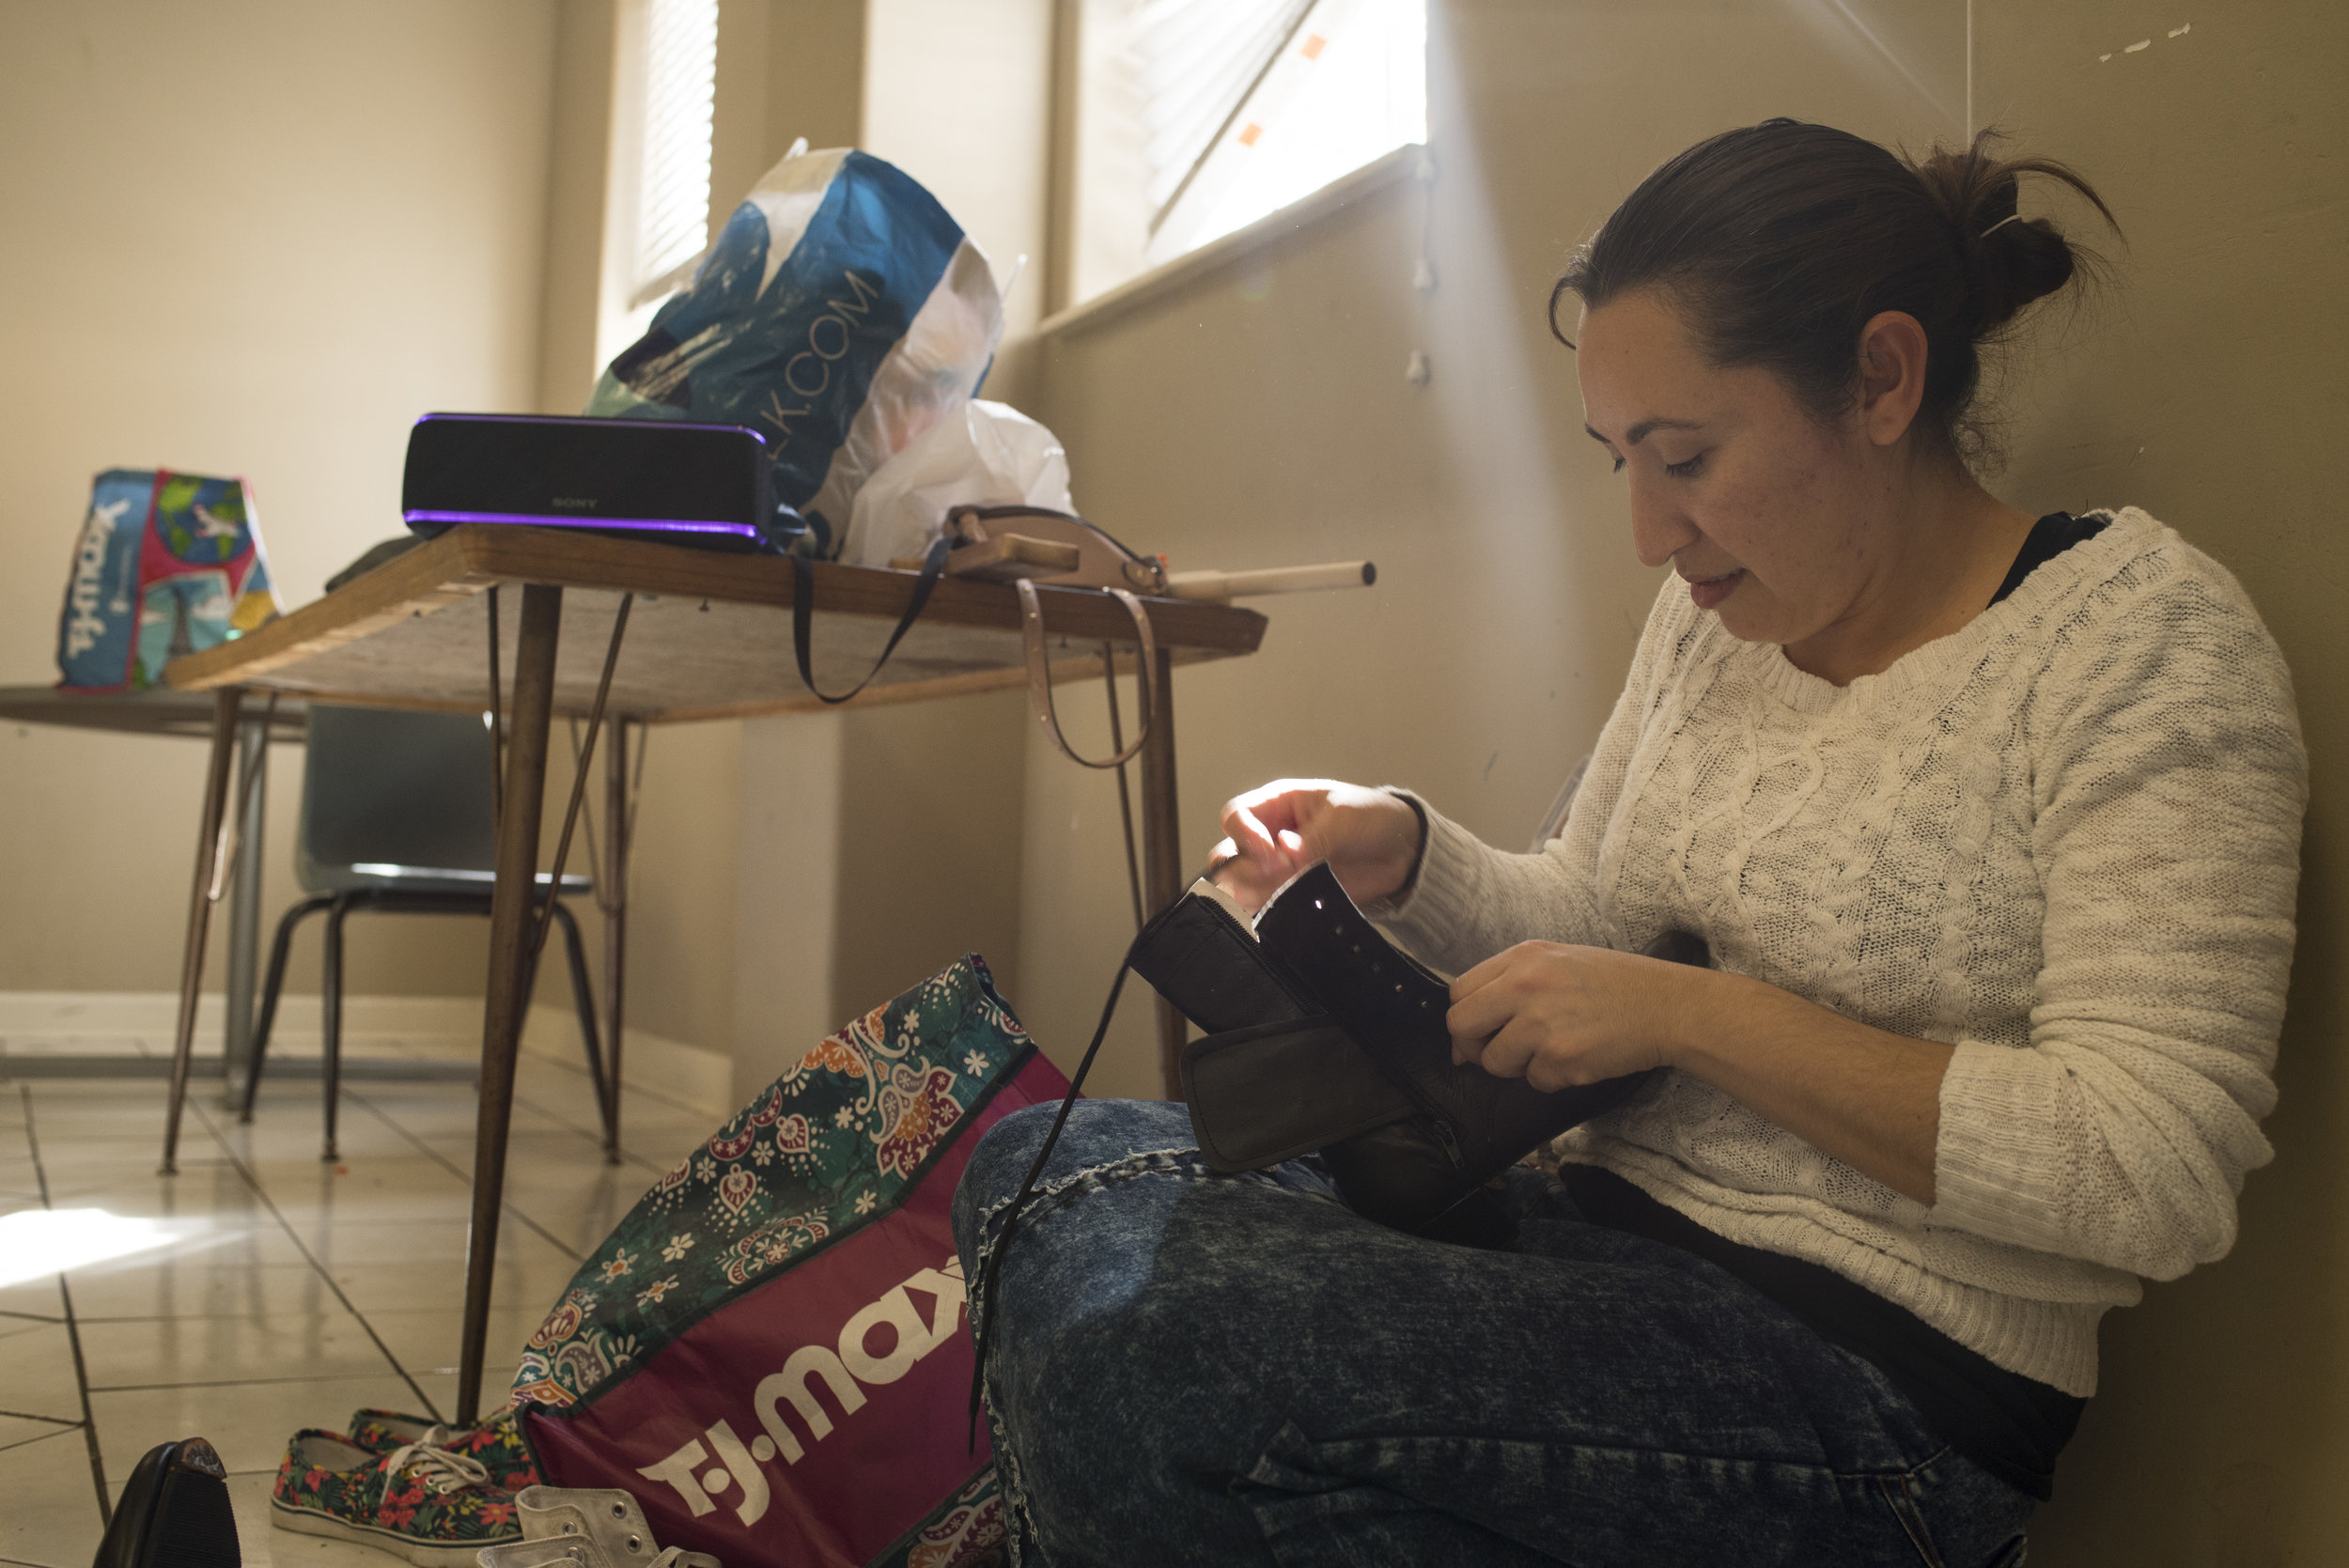 Elisabet Valadez, an instructor and choreographer of several Cinco de Mayo festival dances, laces a pair of Mexican  adelita folklorico  boots - leather heeled boots with nails on the tip of the toe used to create a unique sound while dancing.